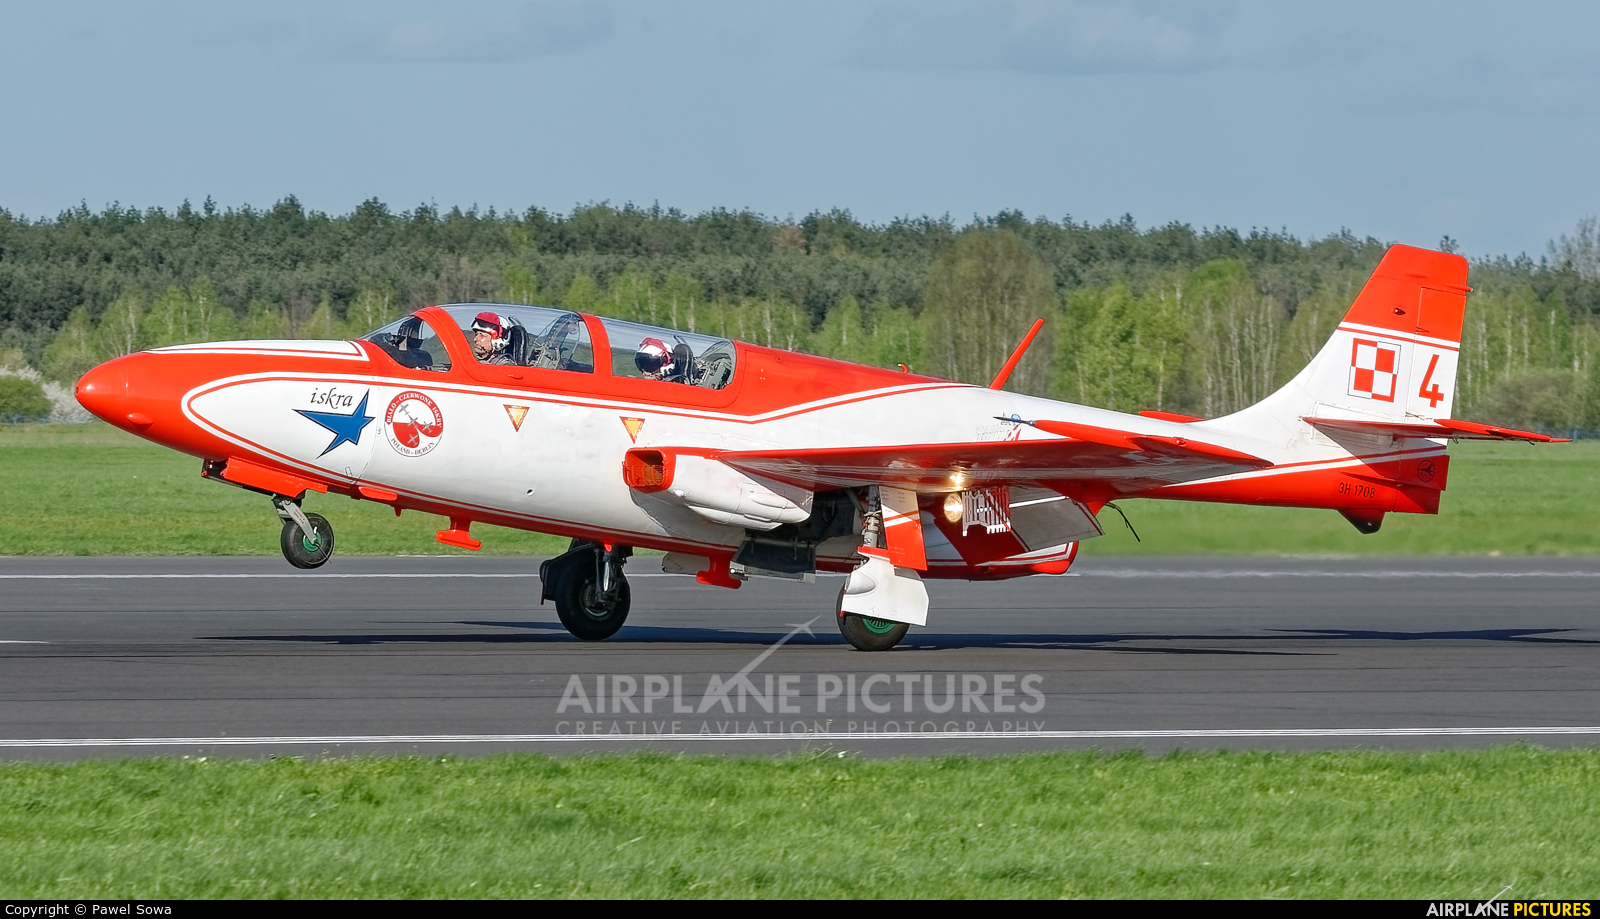 Poland - Air Force: White & Red Iskras 1708 aircraft at Dęblin